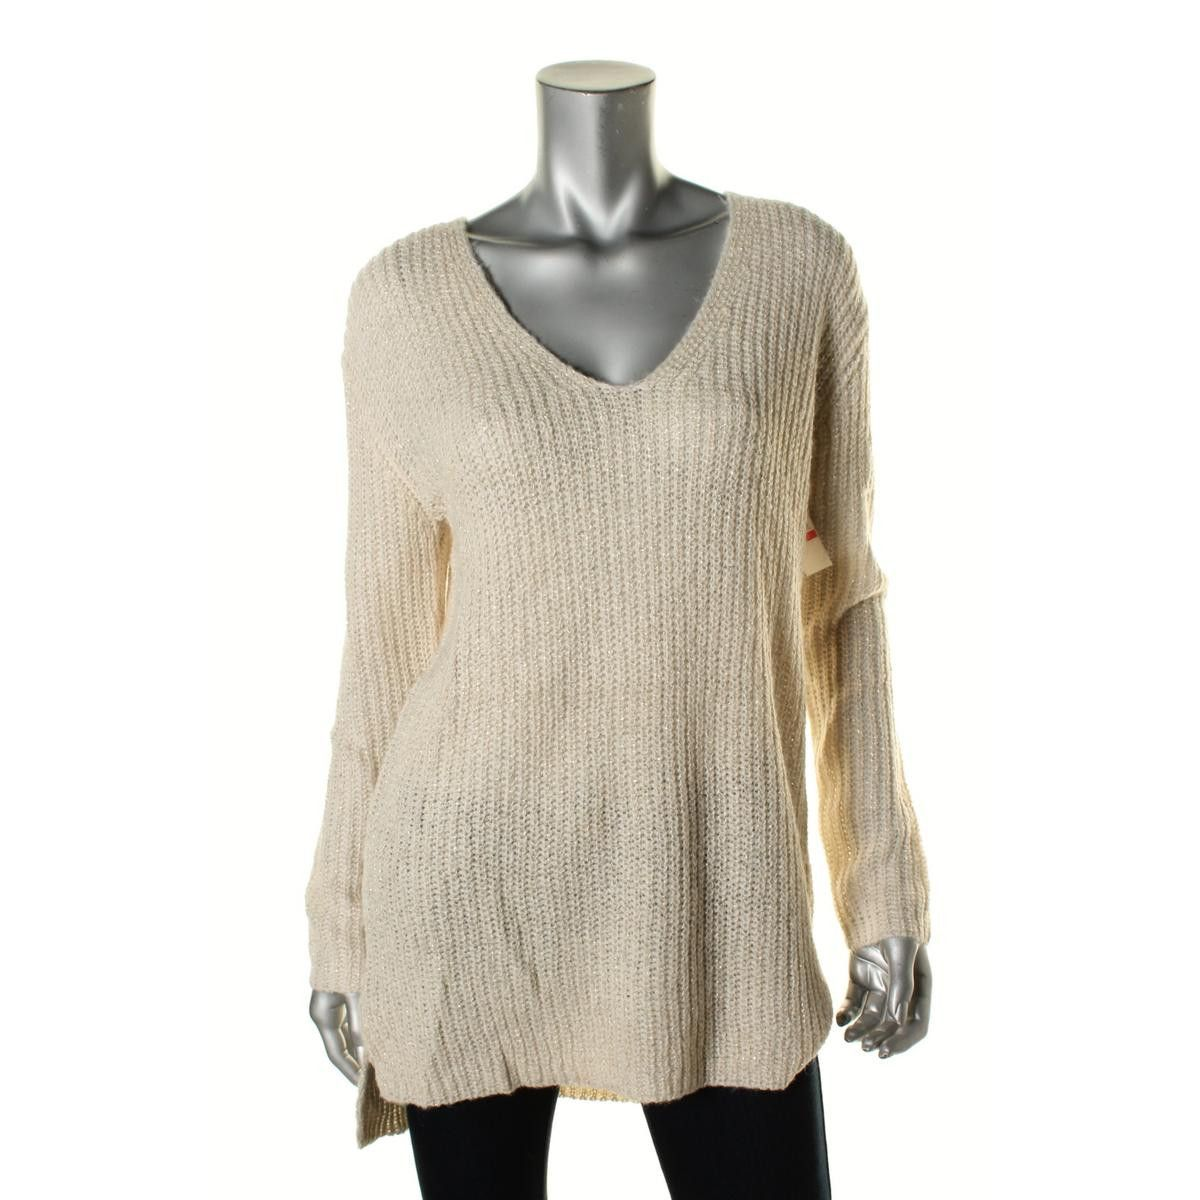 Womens Mohair Blend Metallic Tunic Sweater | Tunic sweater, Vince ...